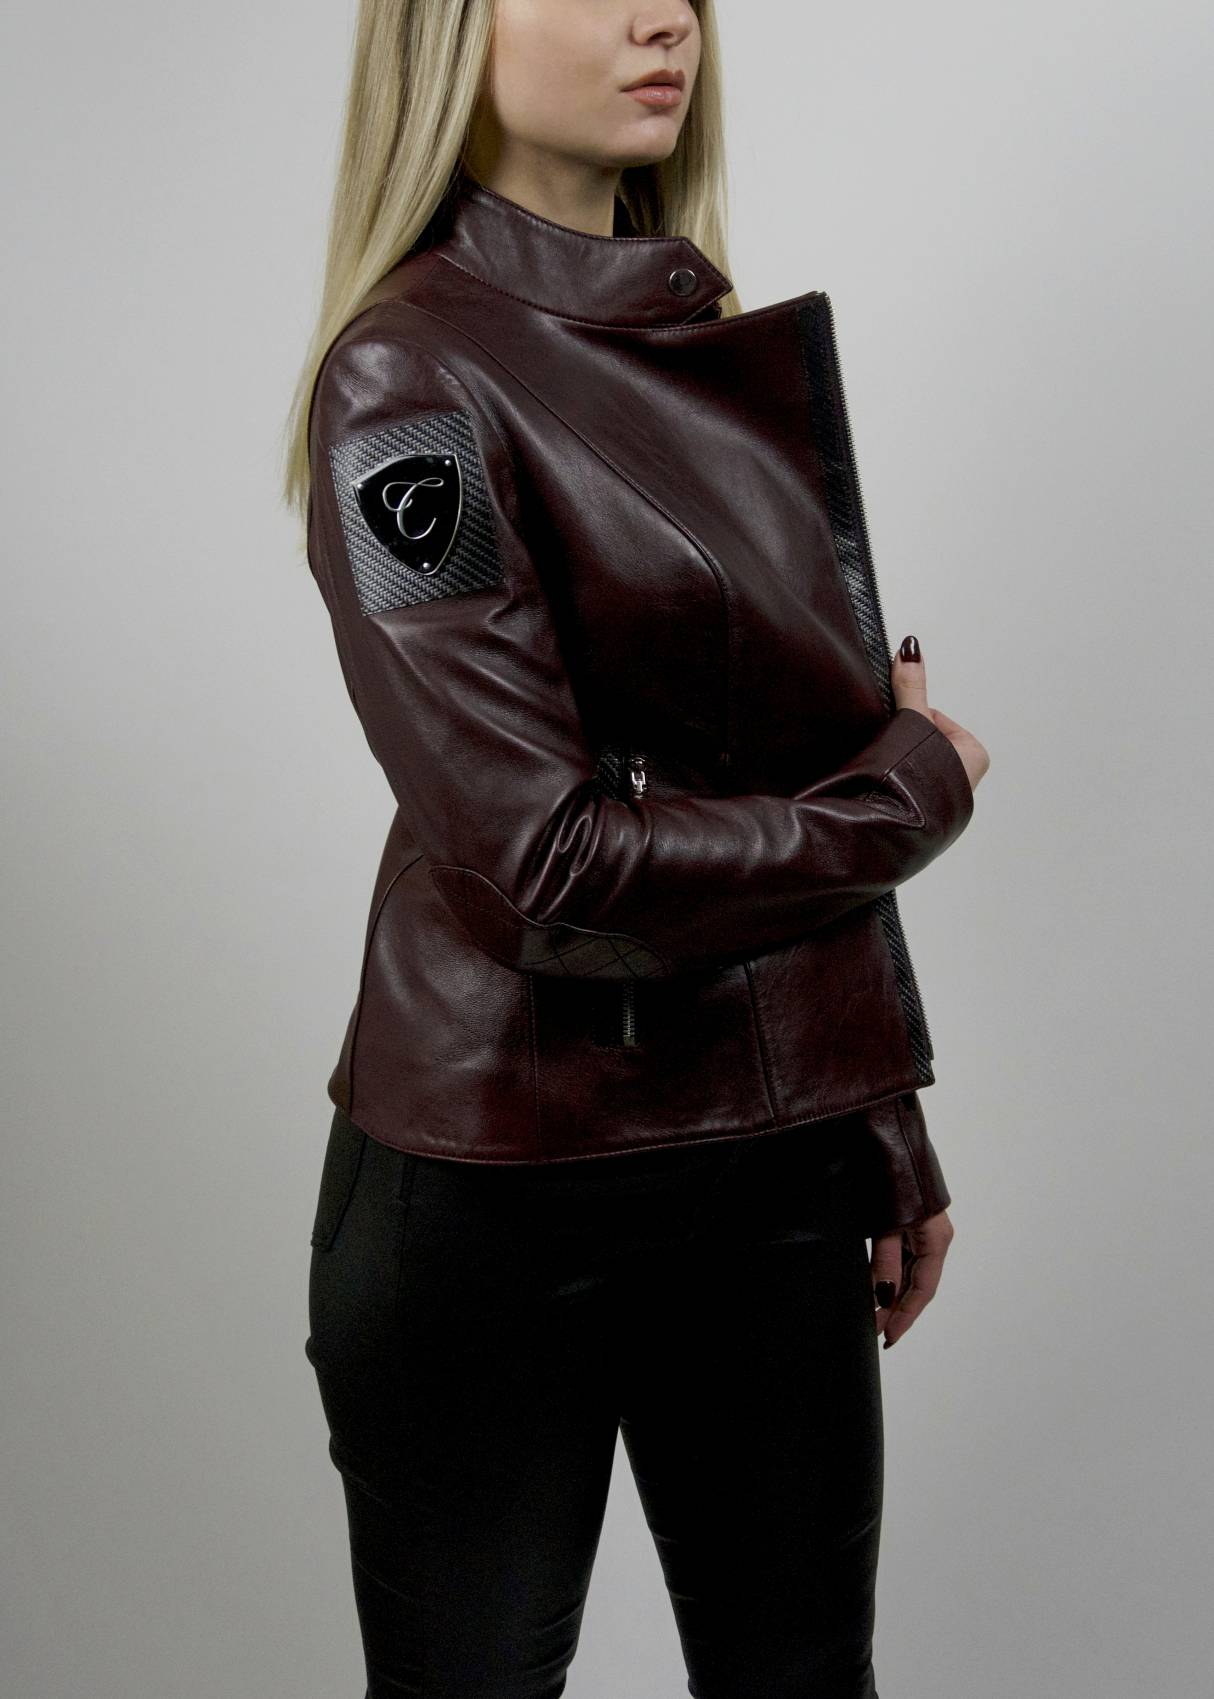 Carbonesque womens cheri leather jacket